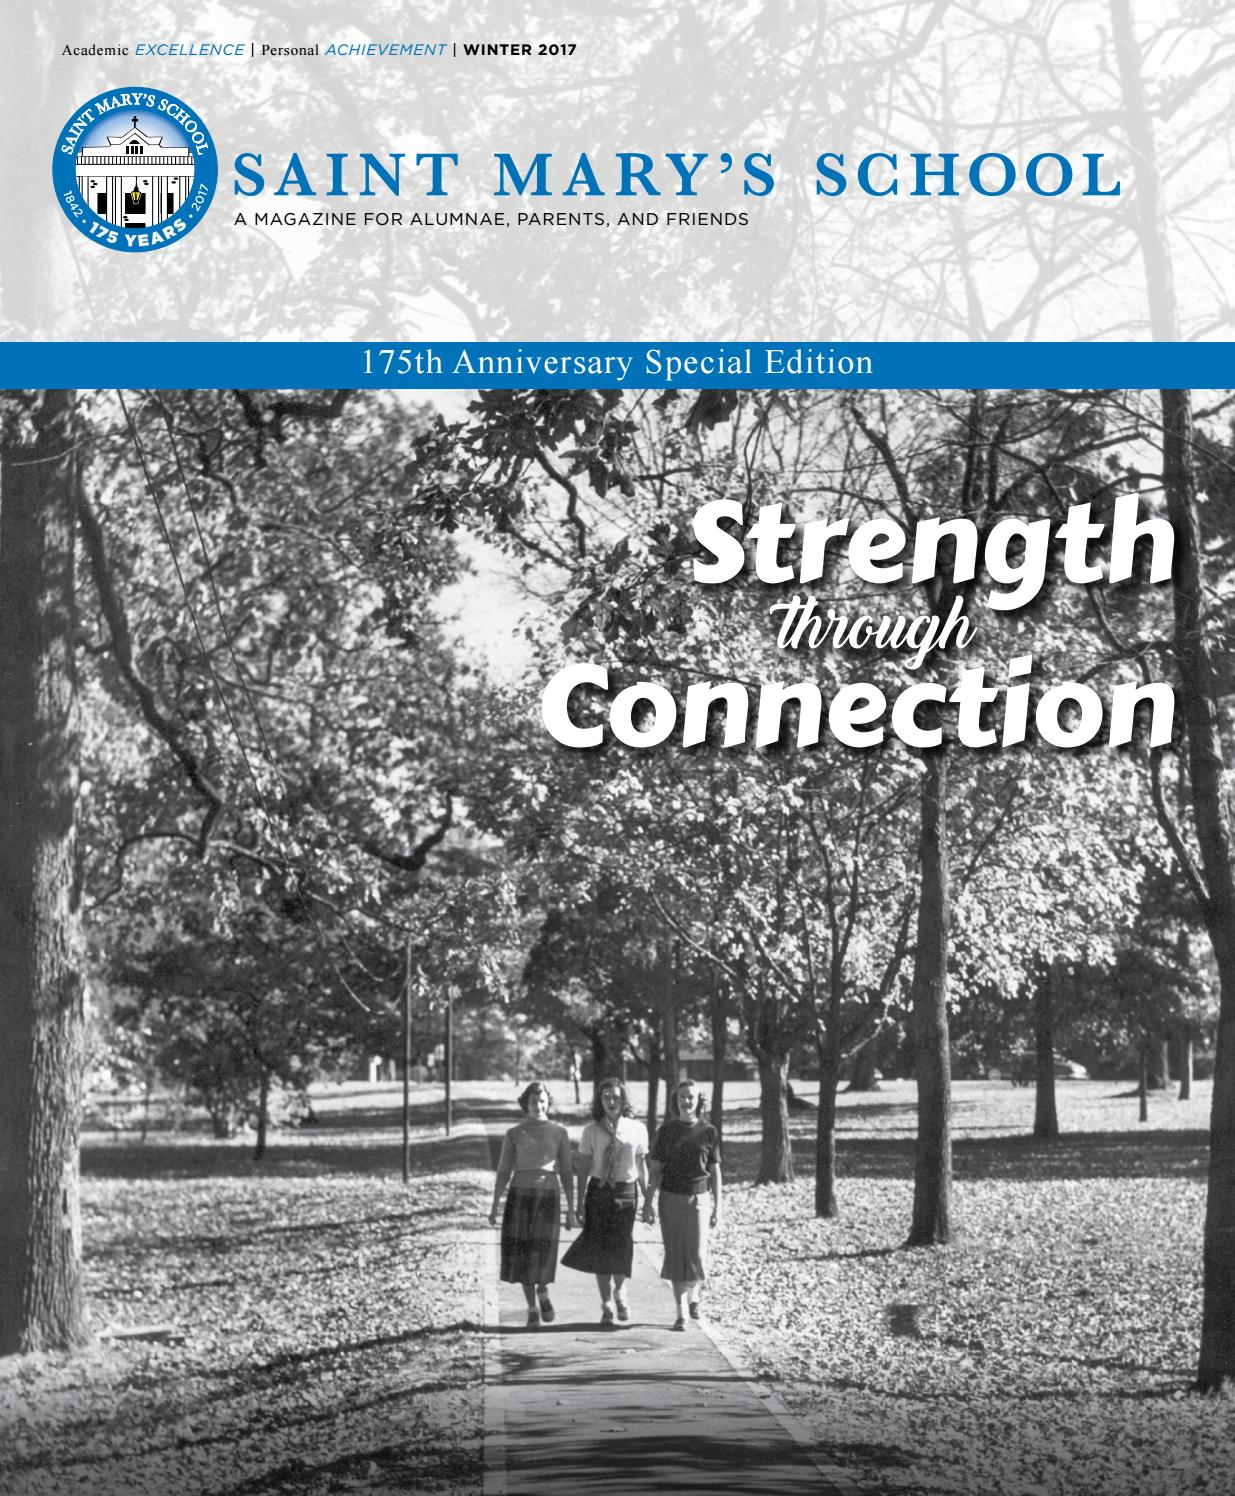 Saint Mary S School Alumnae Magazine Winter 2017 By Saint Mary S School Issuu